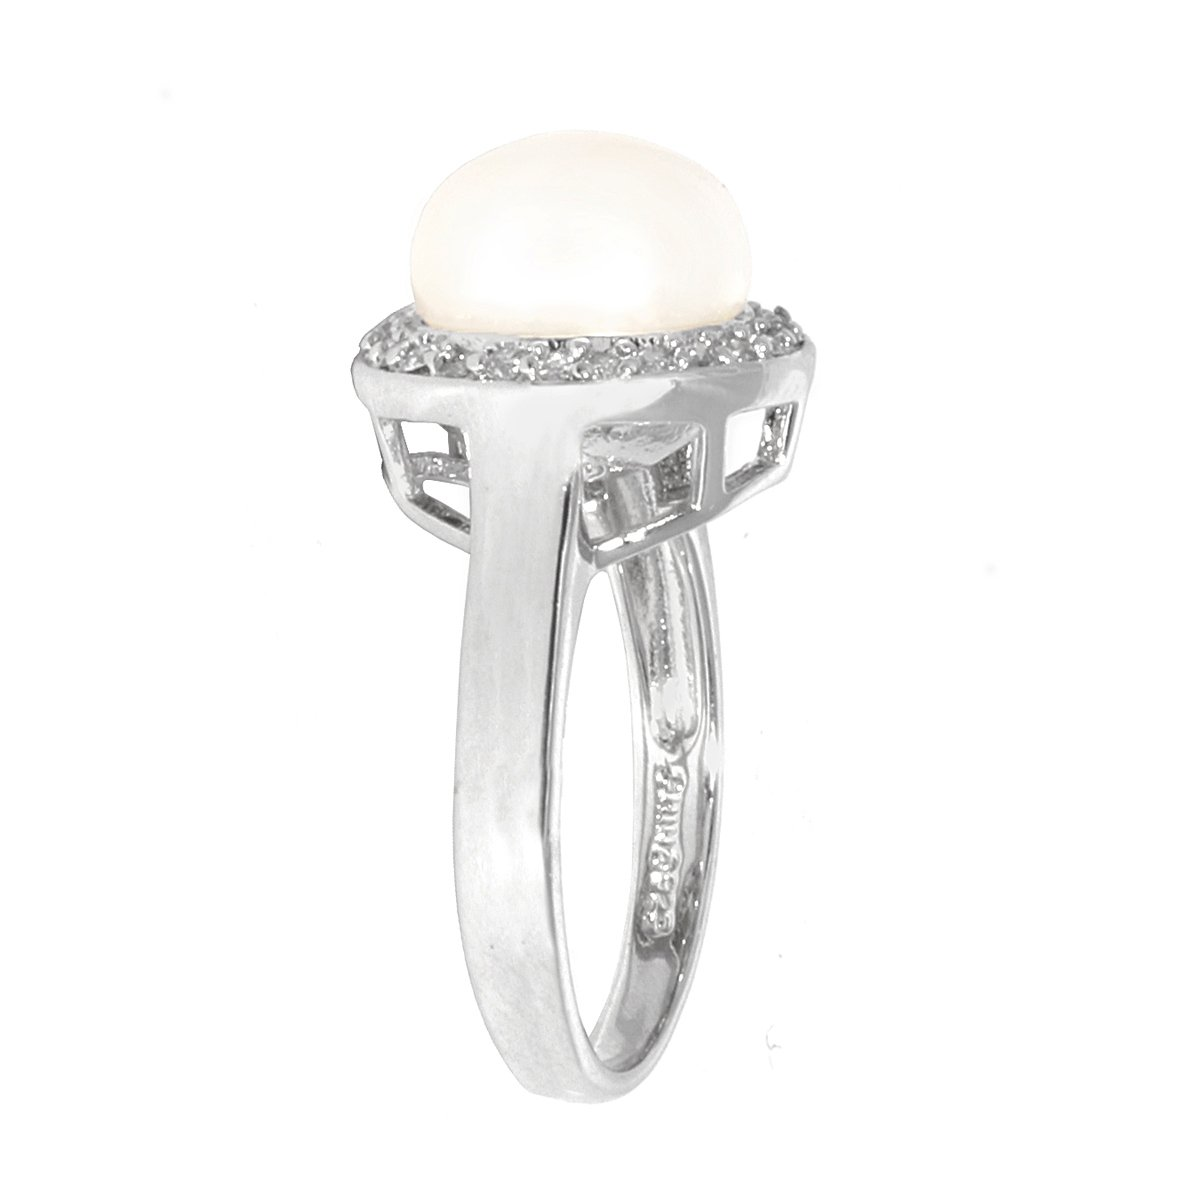 Sterling Silver White Freshwater Cultured Pearl with Cubic Zirconia Ring, Size 8